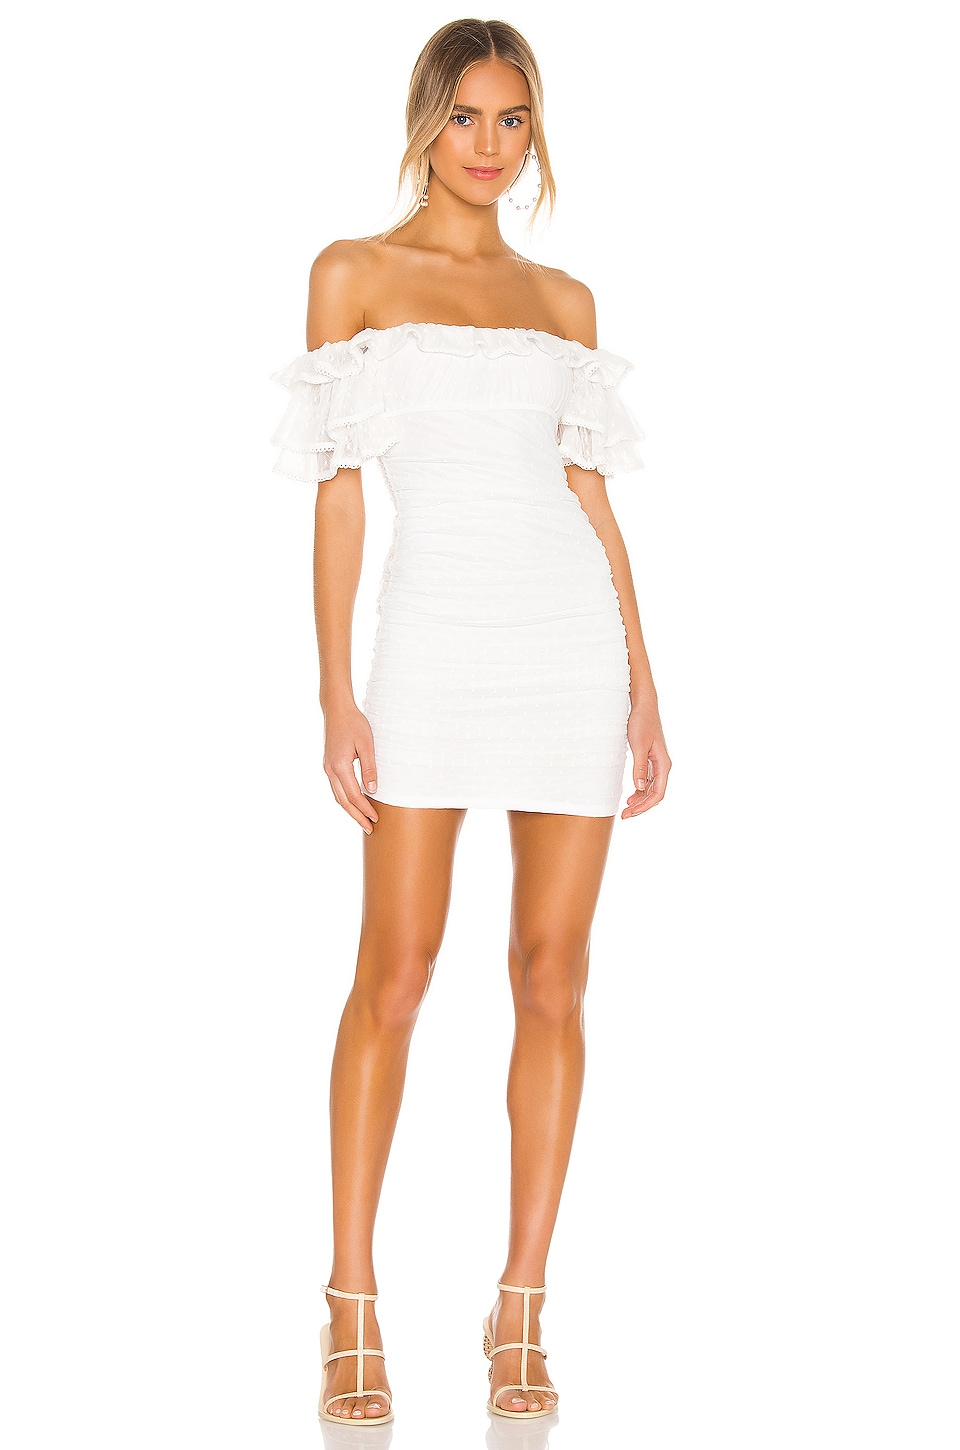 Eva Mini Dress             Camila Coelho                                                                                                       CA$ 294.54 5